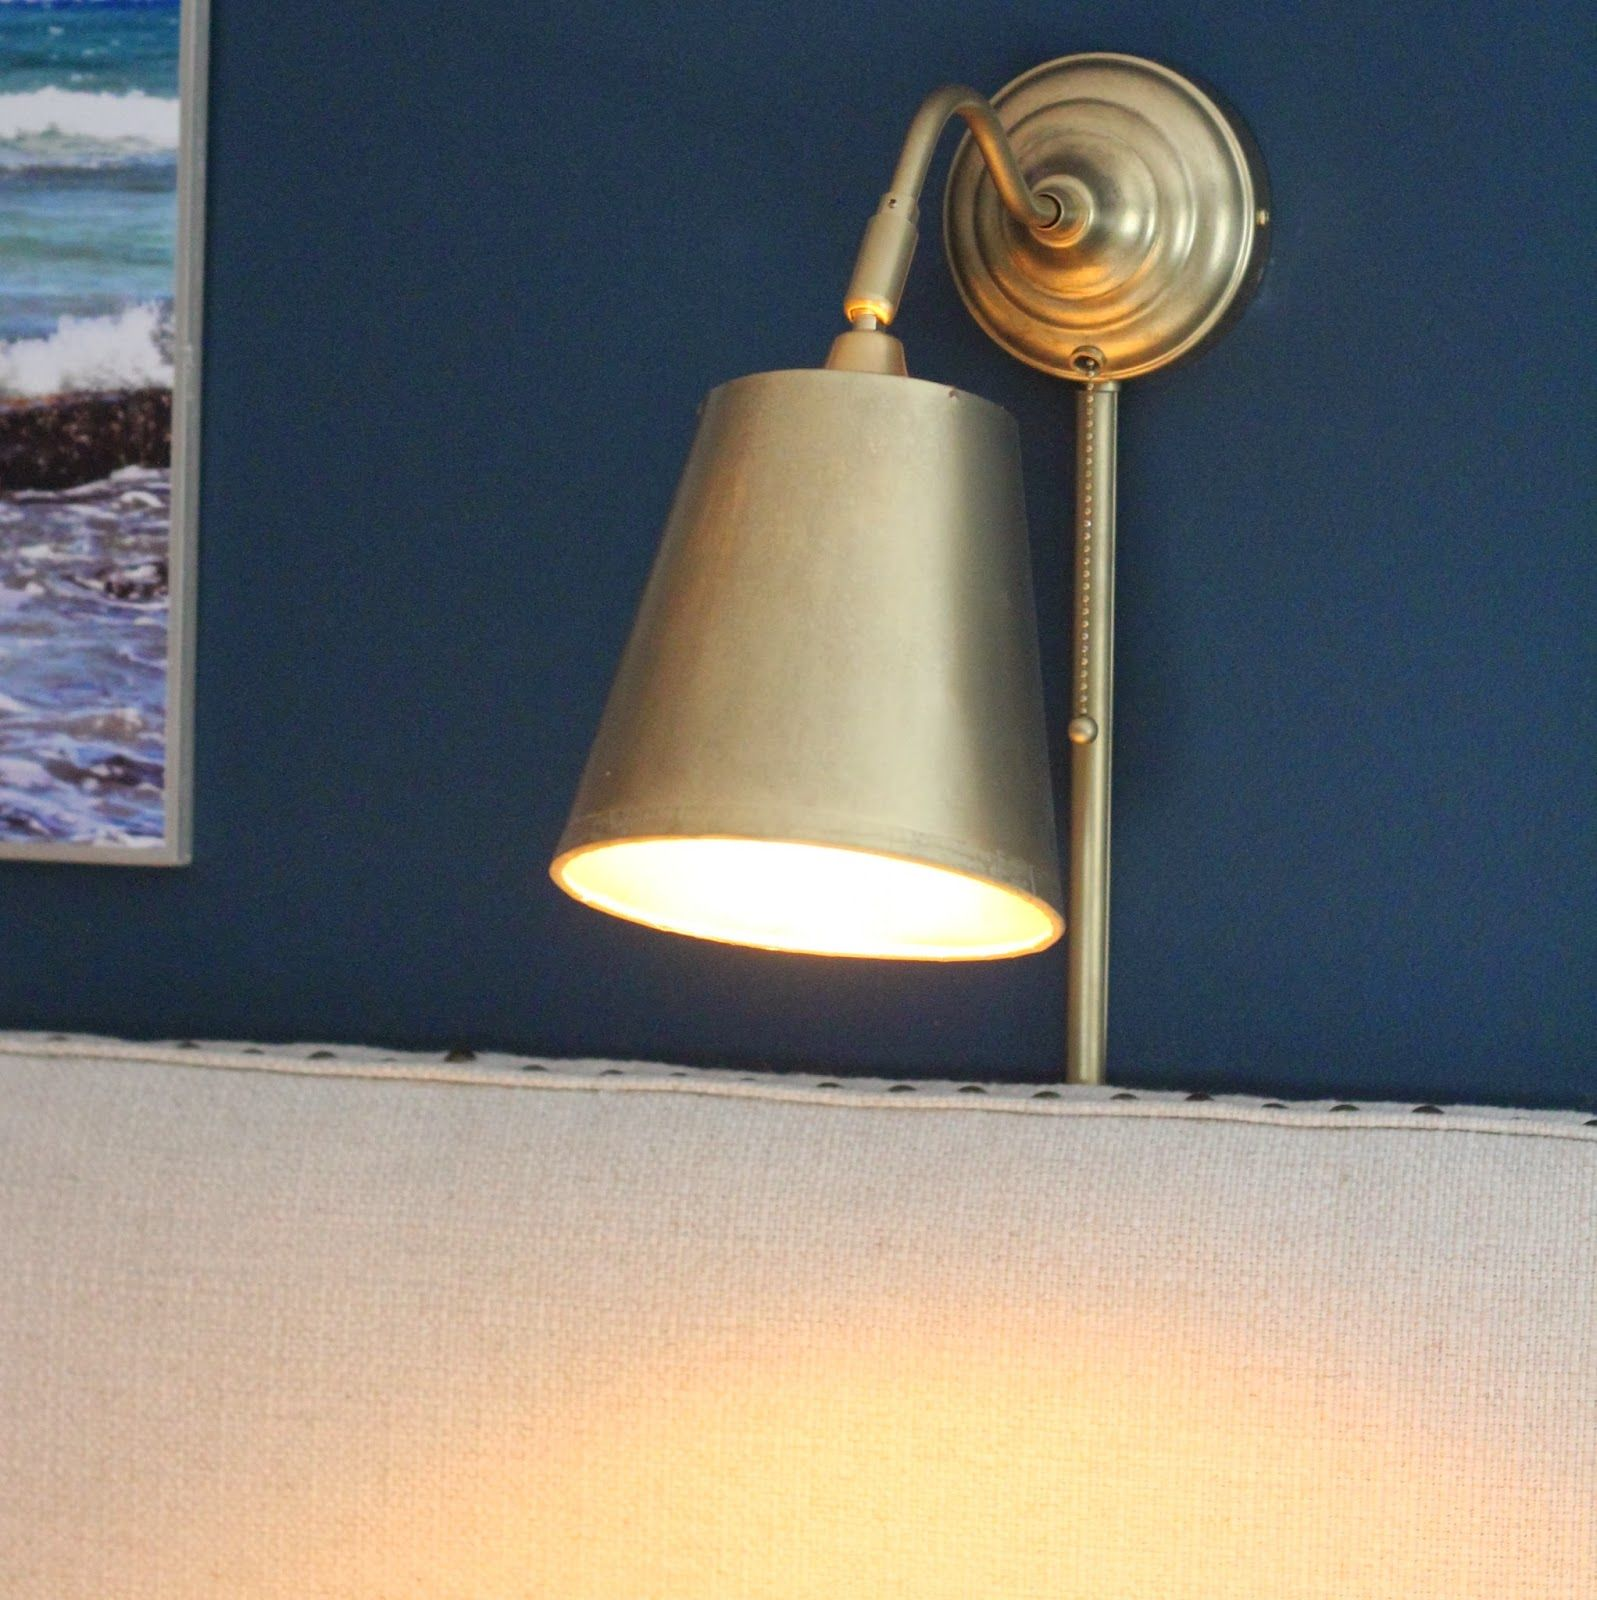 Ikea Wall Light Hack Ikea Wall Lights Wall Mounted Lights Bedroom Wall Lamps Bedroom